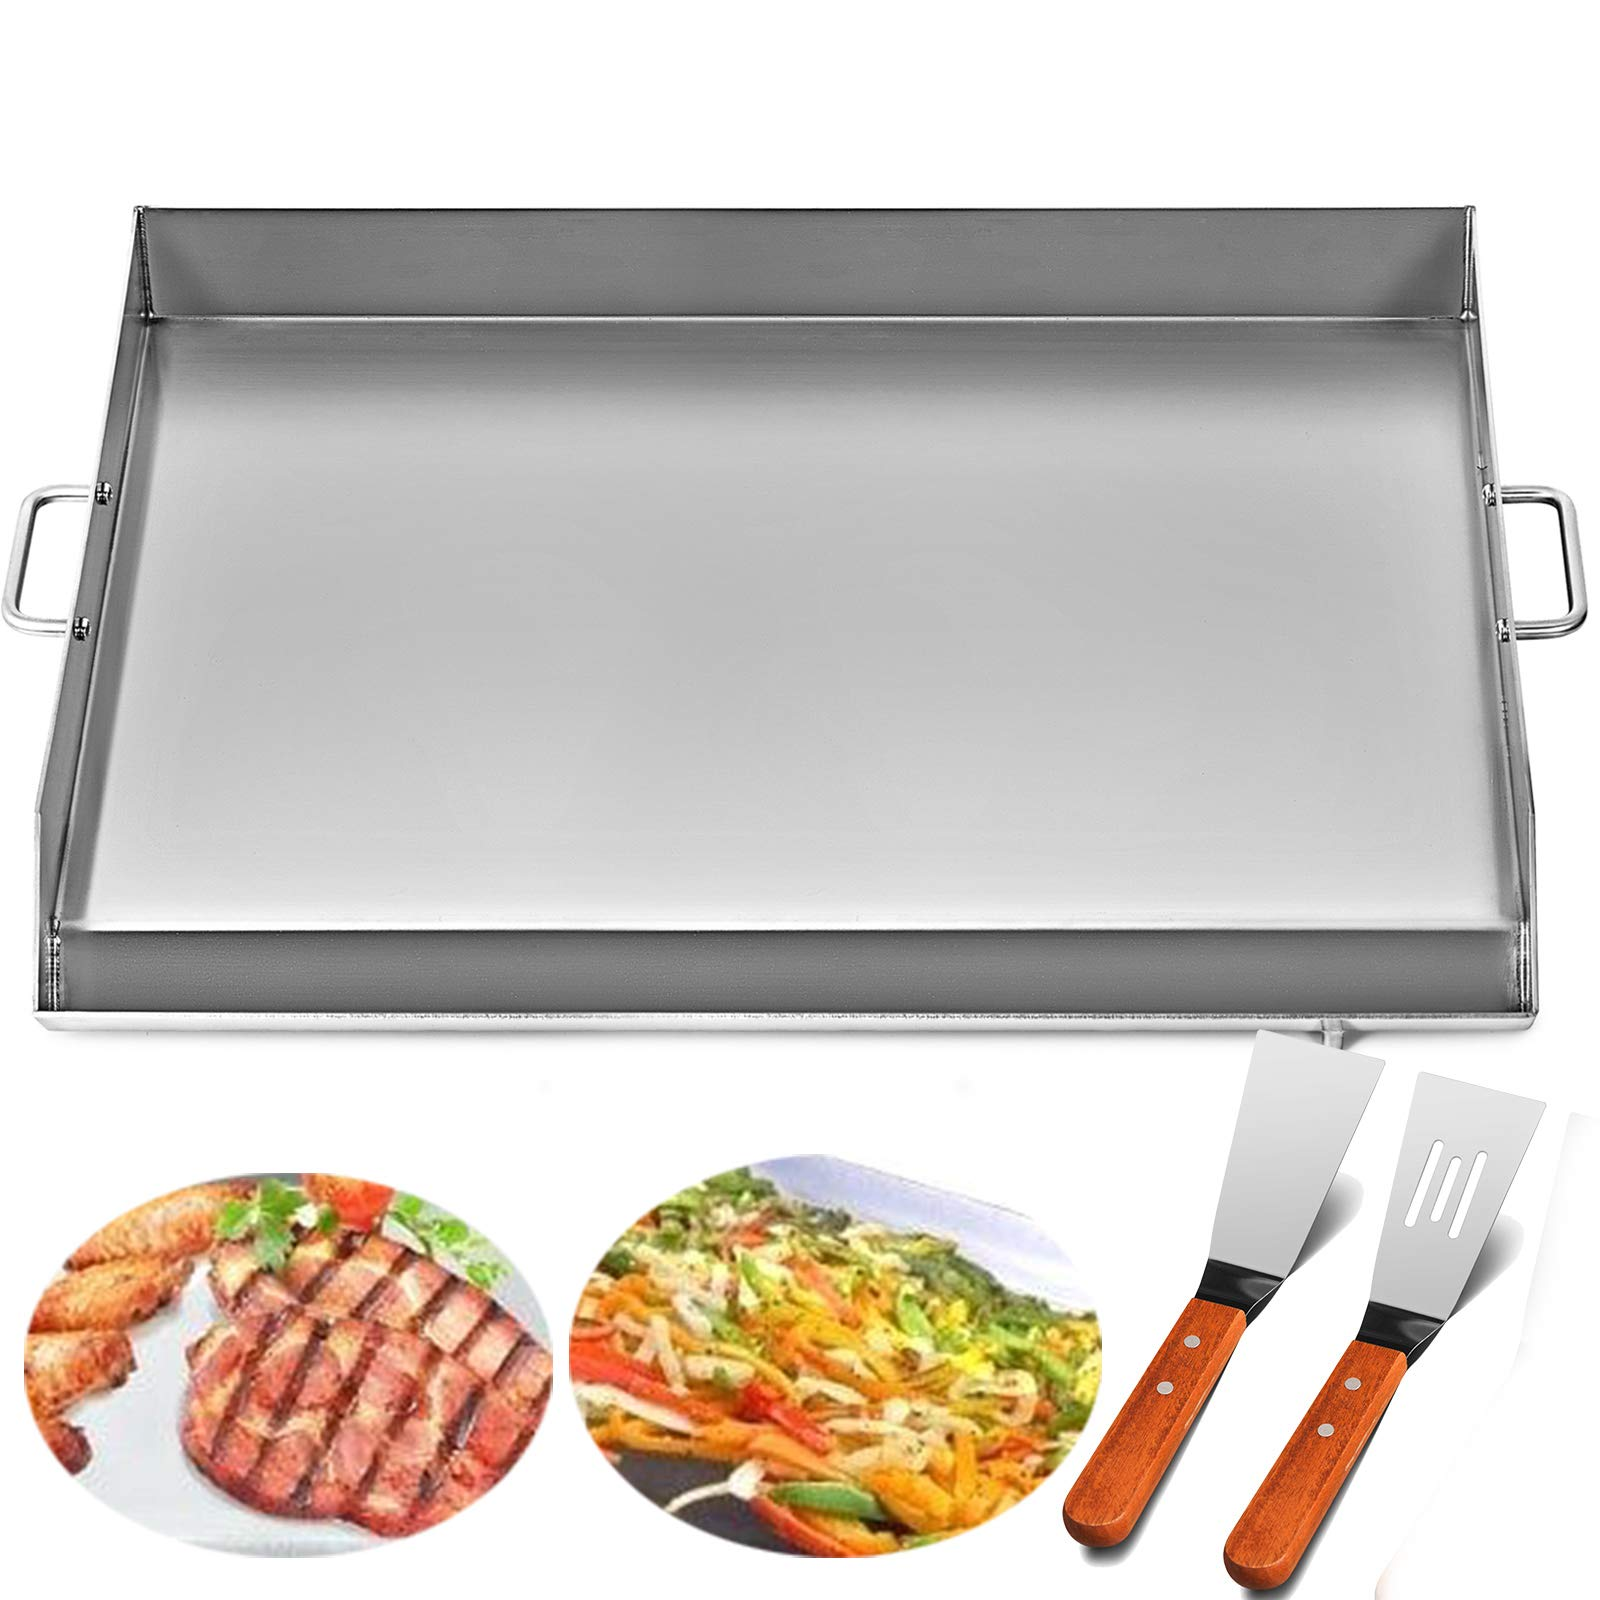 Happybuy Universal Flat Top Griddle 32''x17'' Stainless Steel Flat Top Griddle Plancha Comal BBQ Griddle with Handles for Restaurant or Home Use